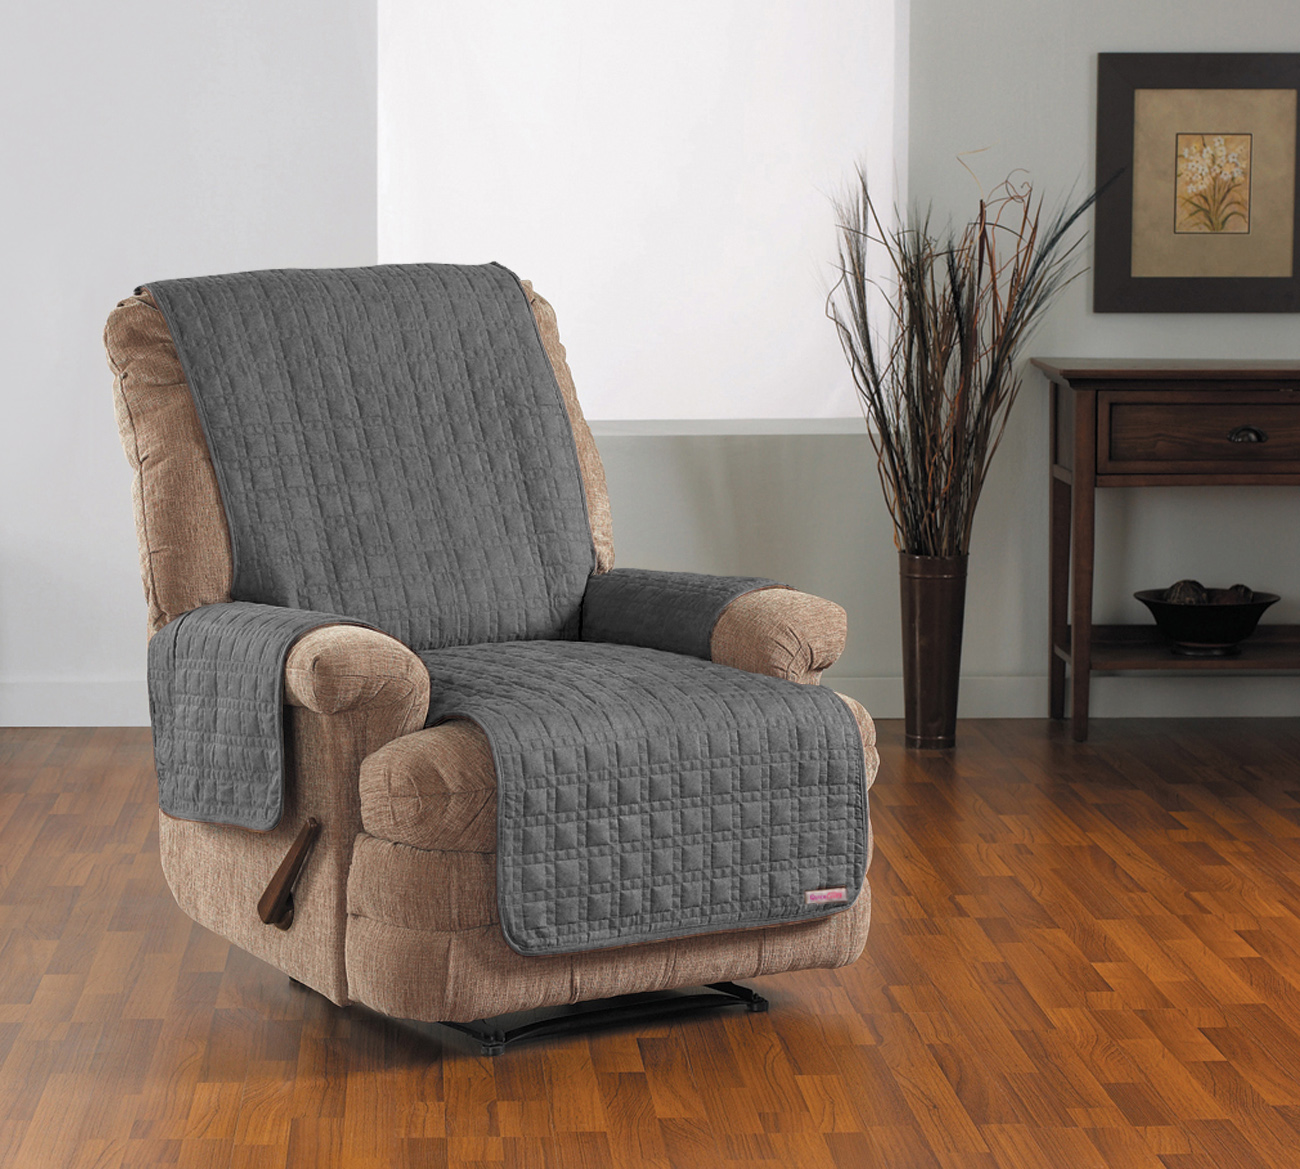 Recliners Chair Furniture Protector 28inch For Stains Pets